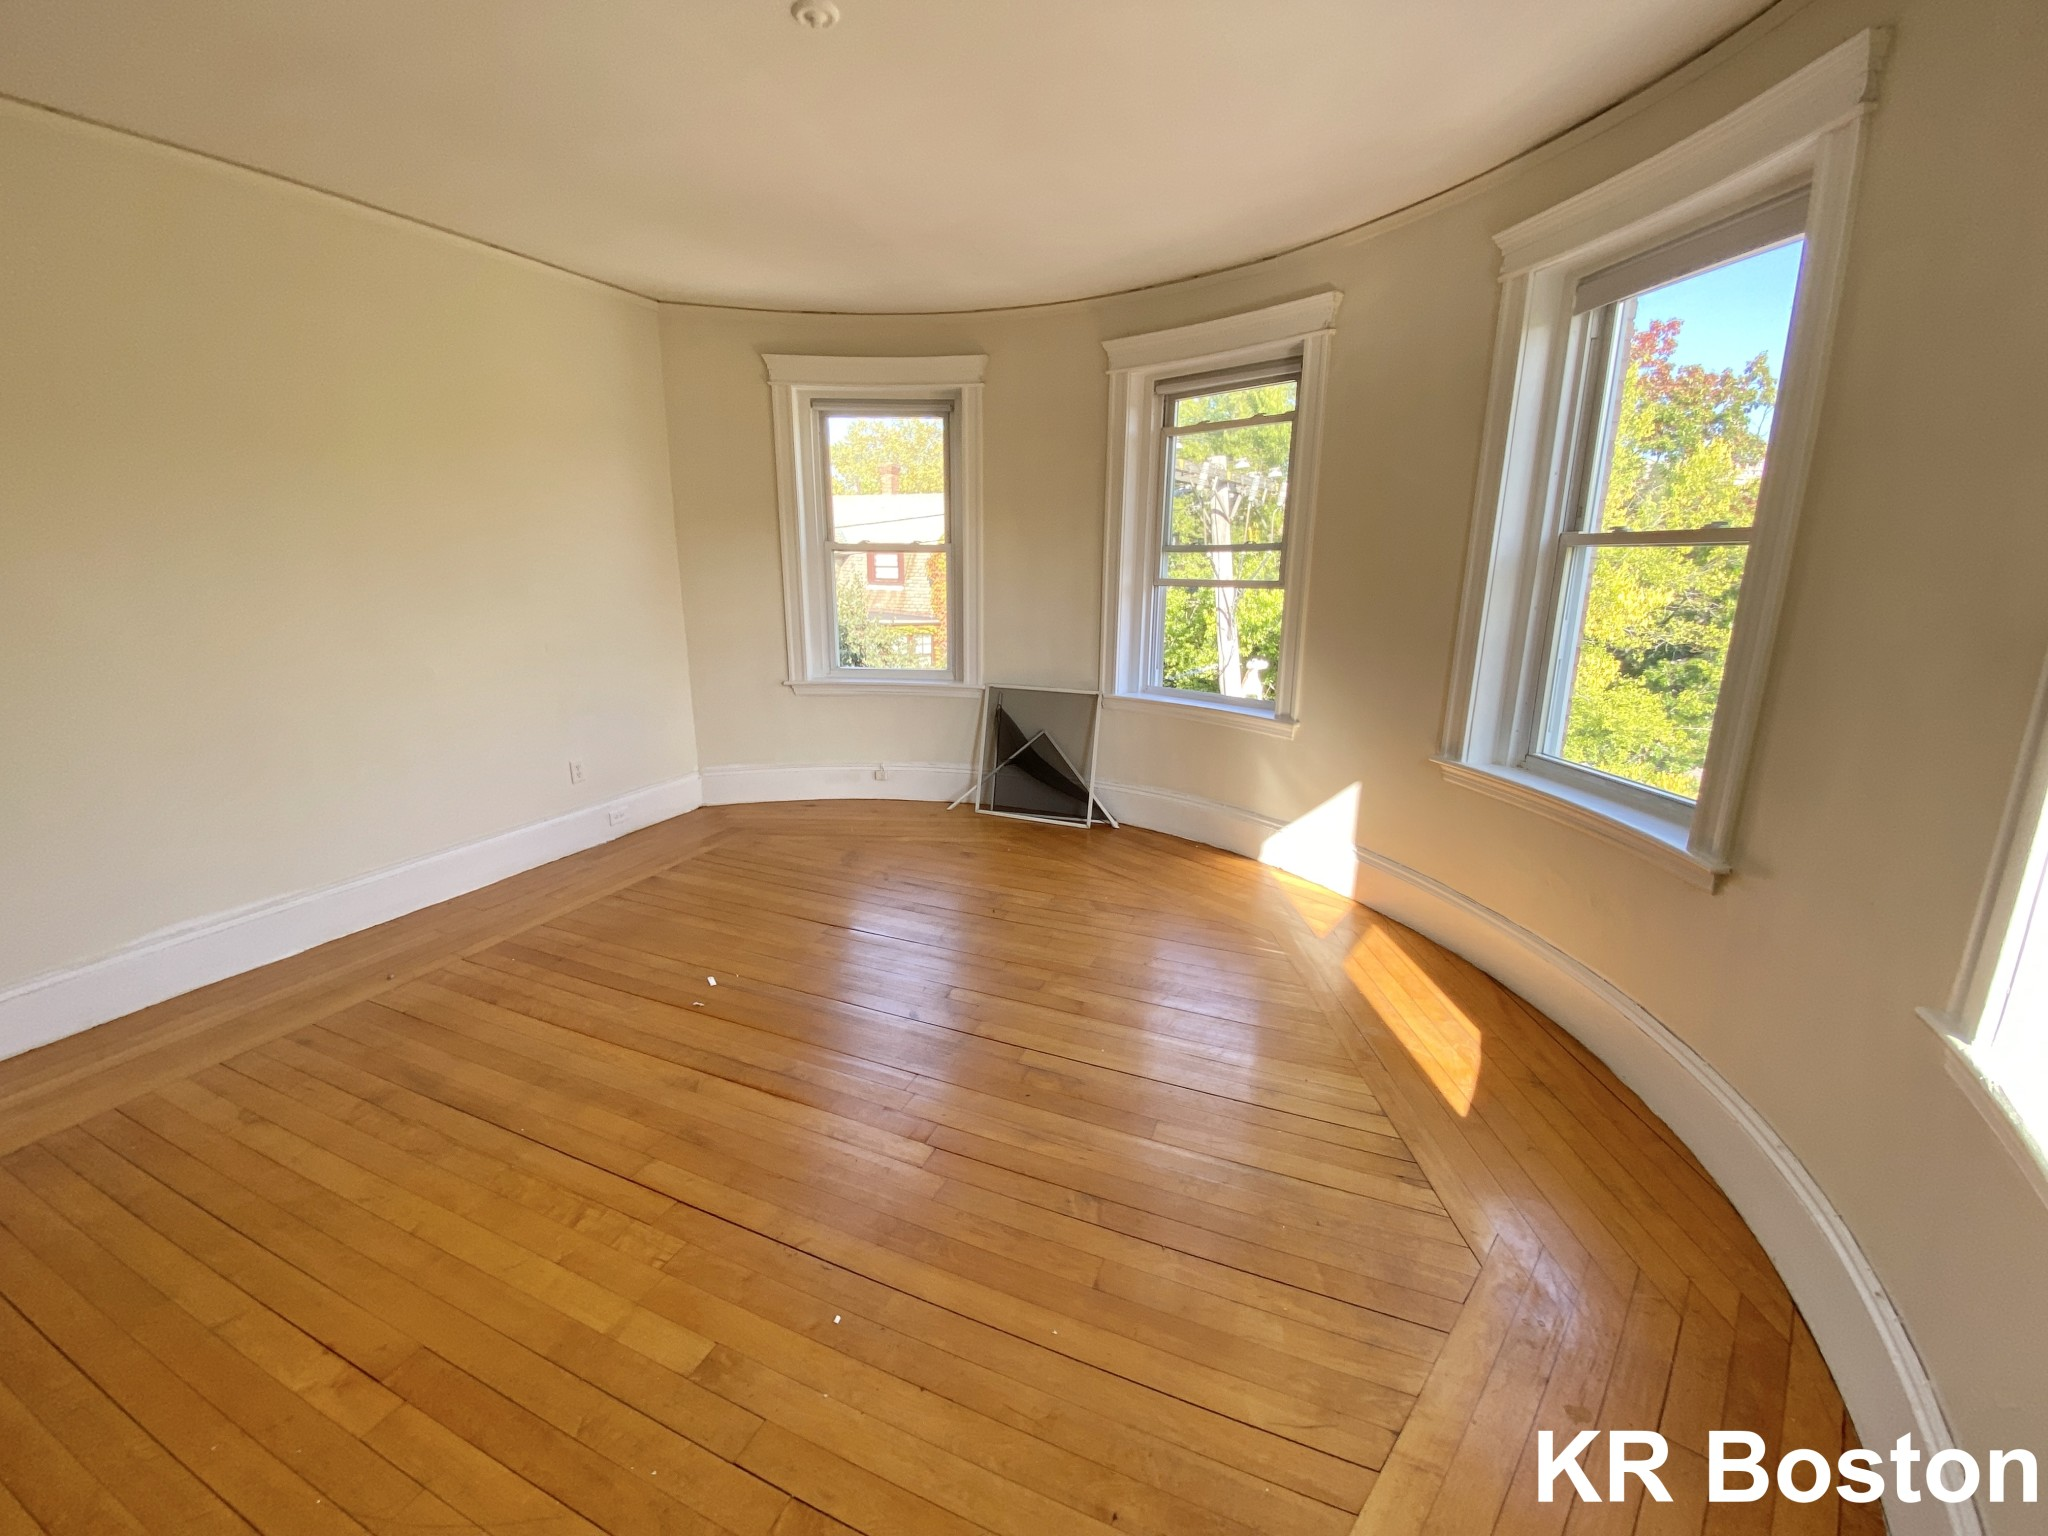 2 Beds, 1 Bath apartment in Brookline for $2,125